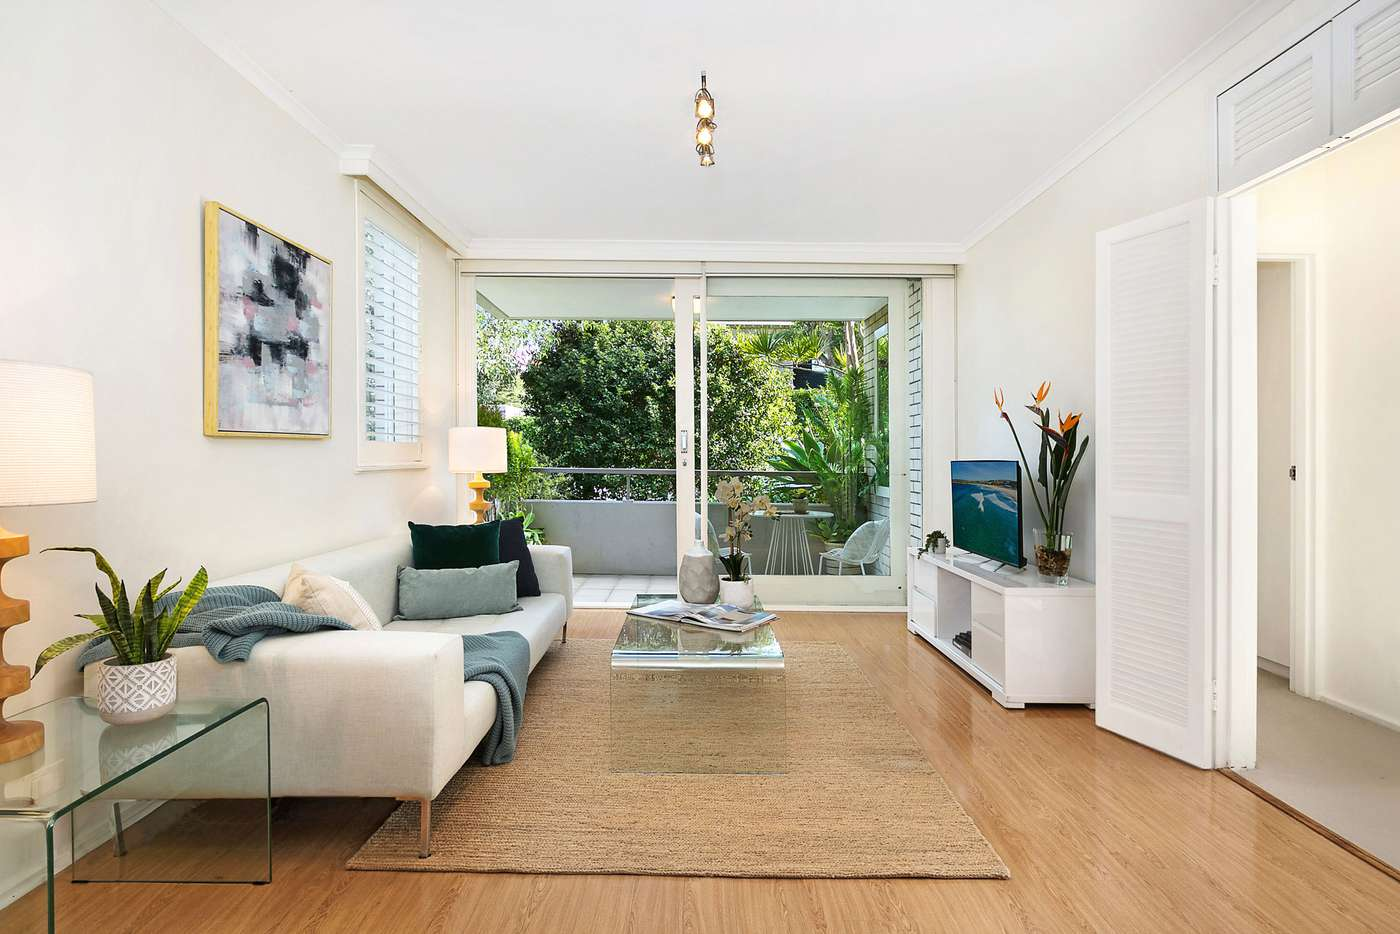 Main view of Homely apartment listing, 4/10-12 Bannerman Street, Cremorne NSW 2090